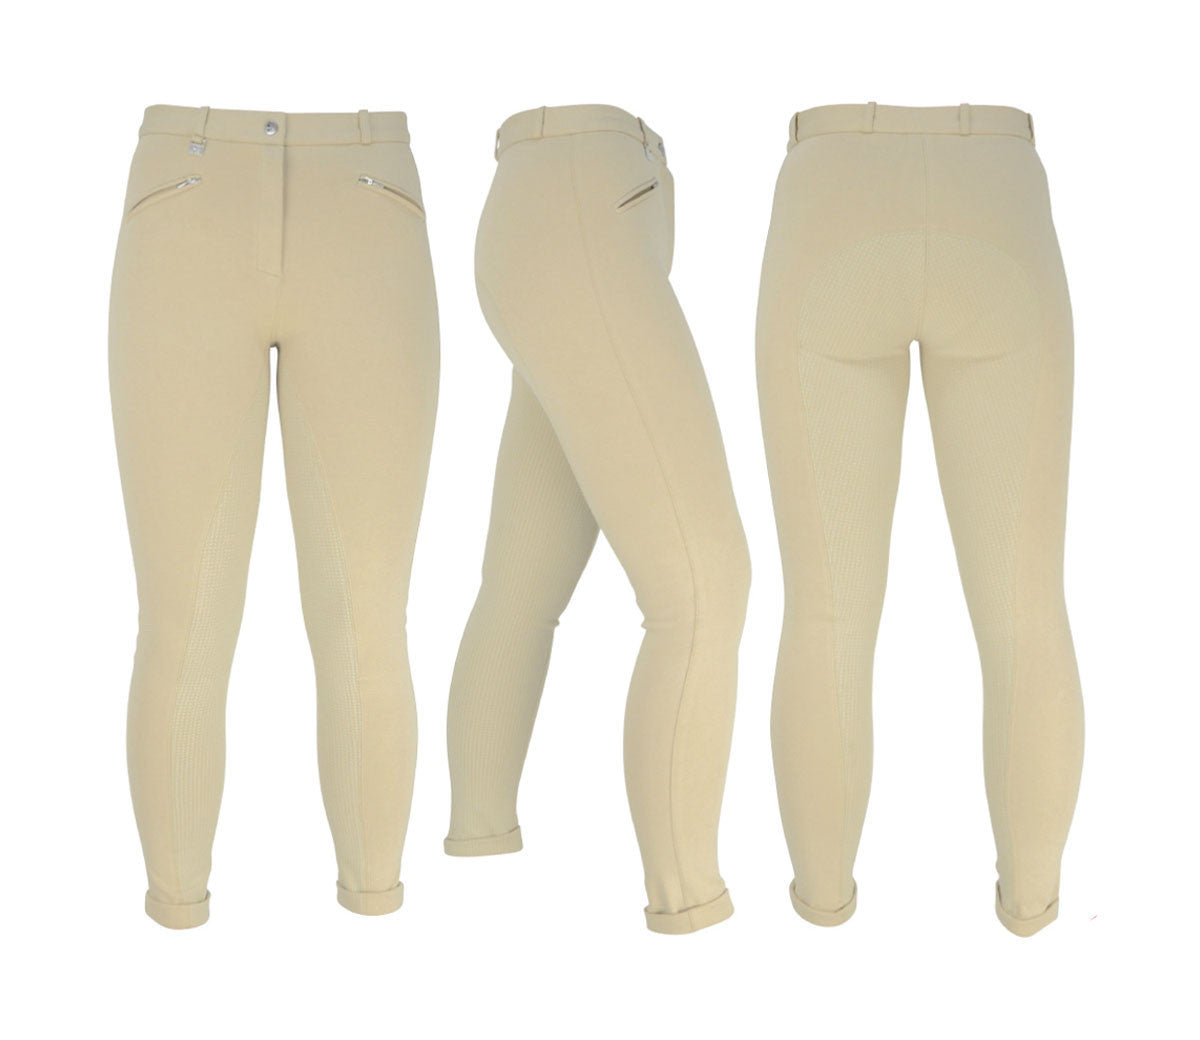 HyPERFORMANCE Raised Polka Dot Ladies Jodhpurs